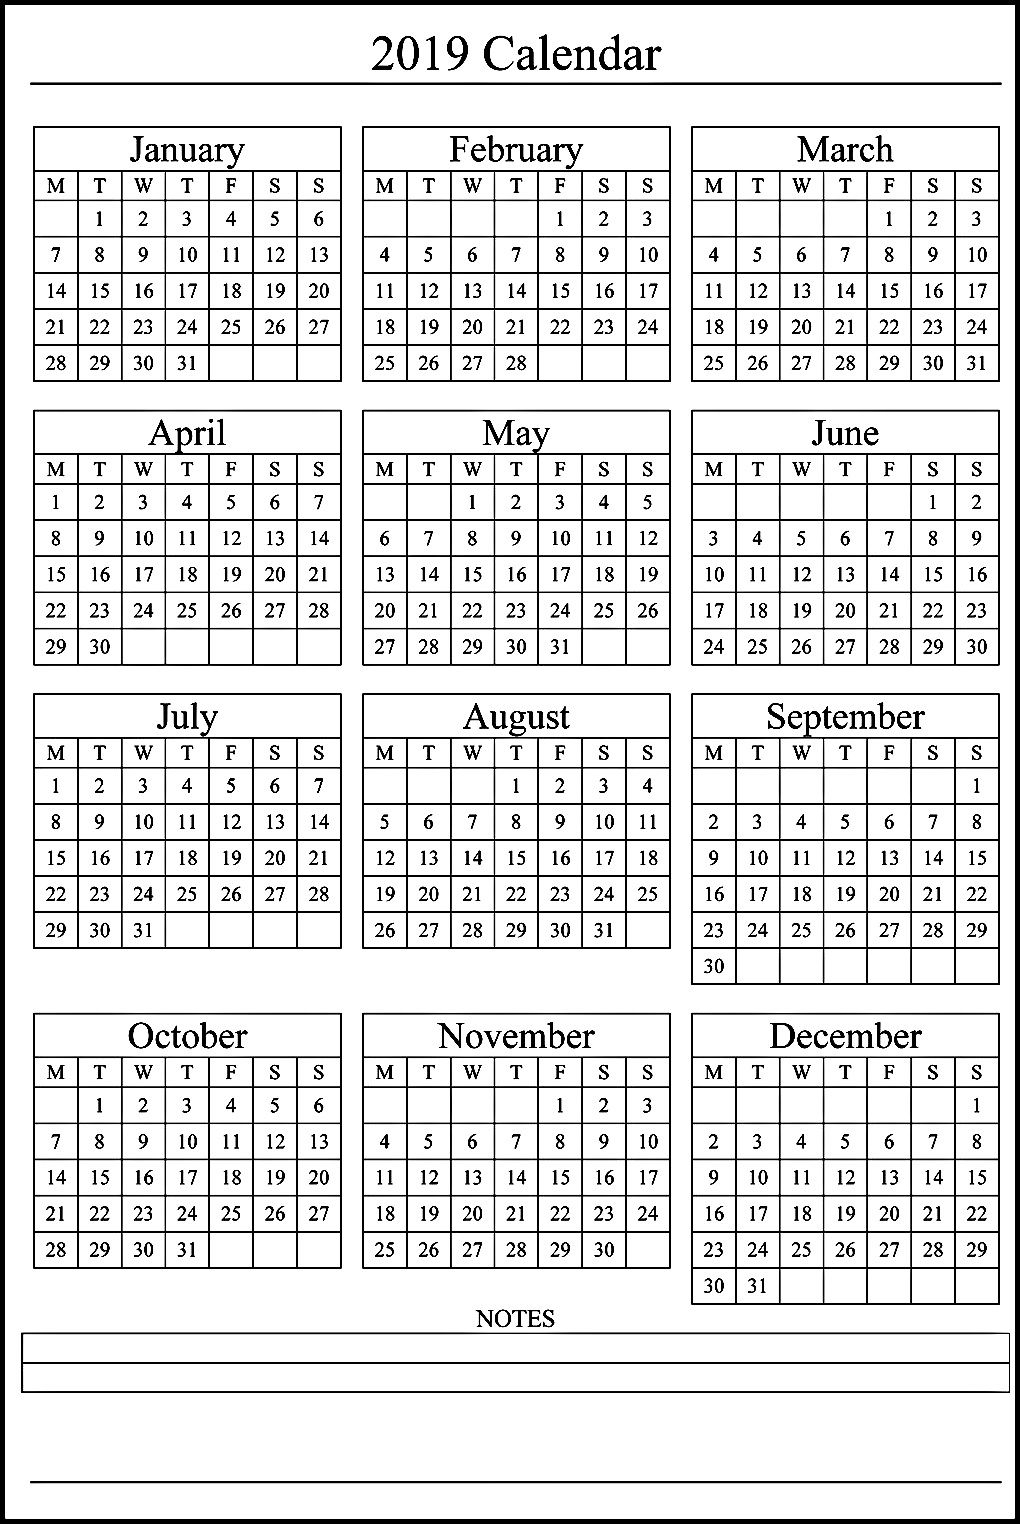 12 Month Calendar On One Page #2019Calendar #holidayscalendar regarding Blank 12 Month Calender